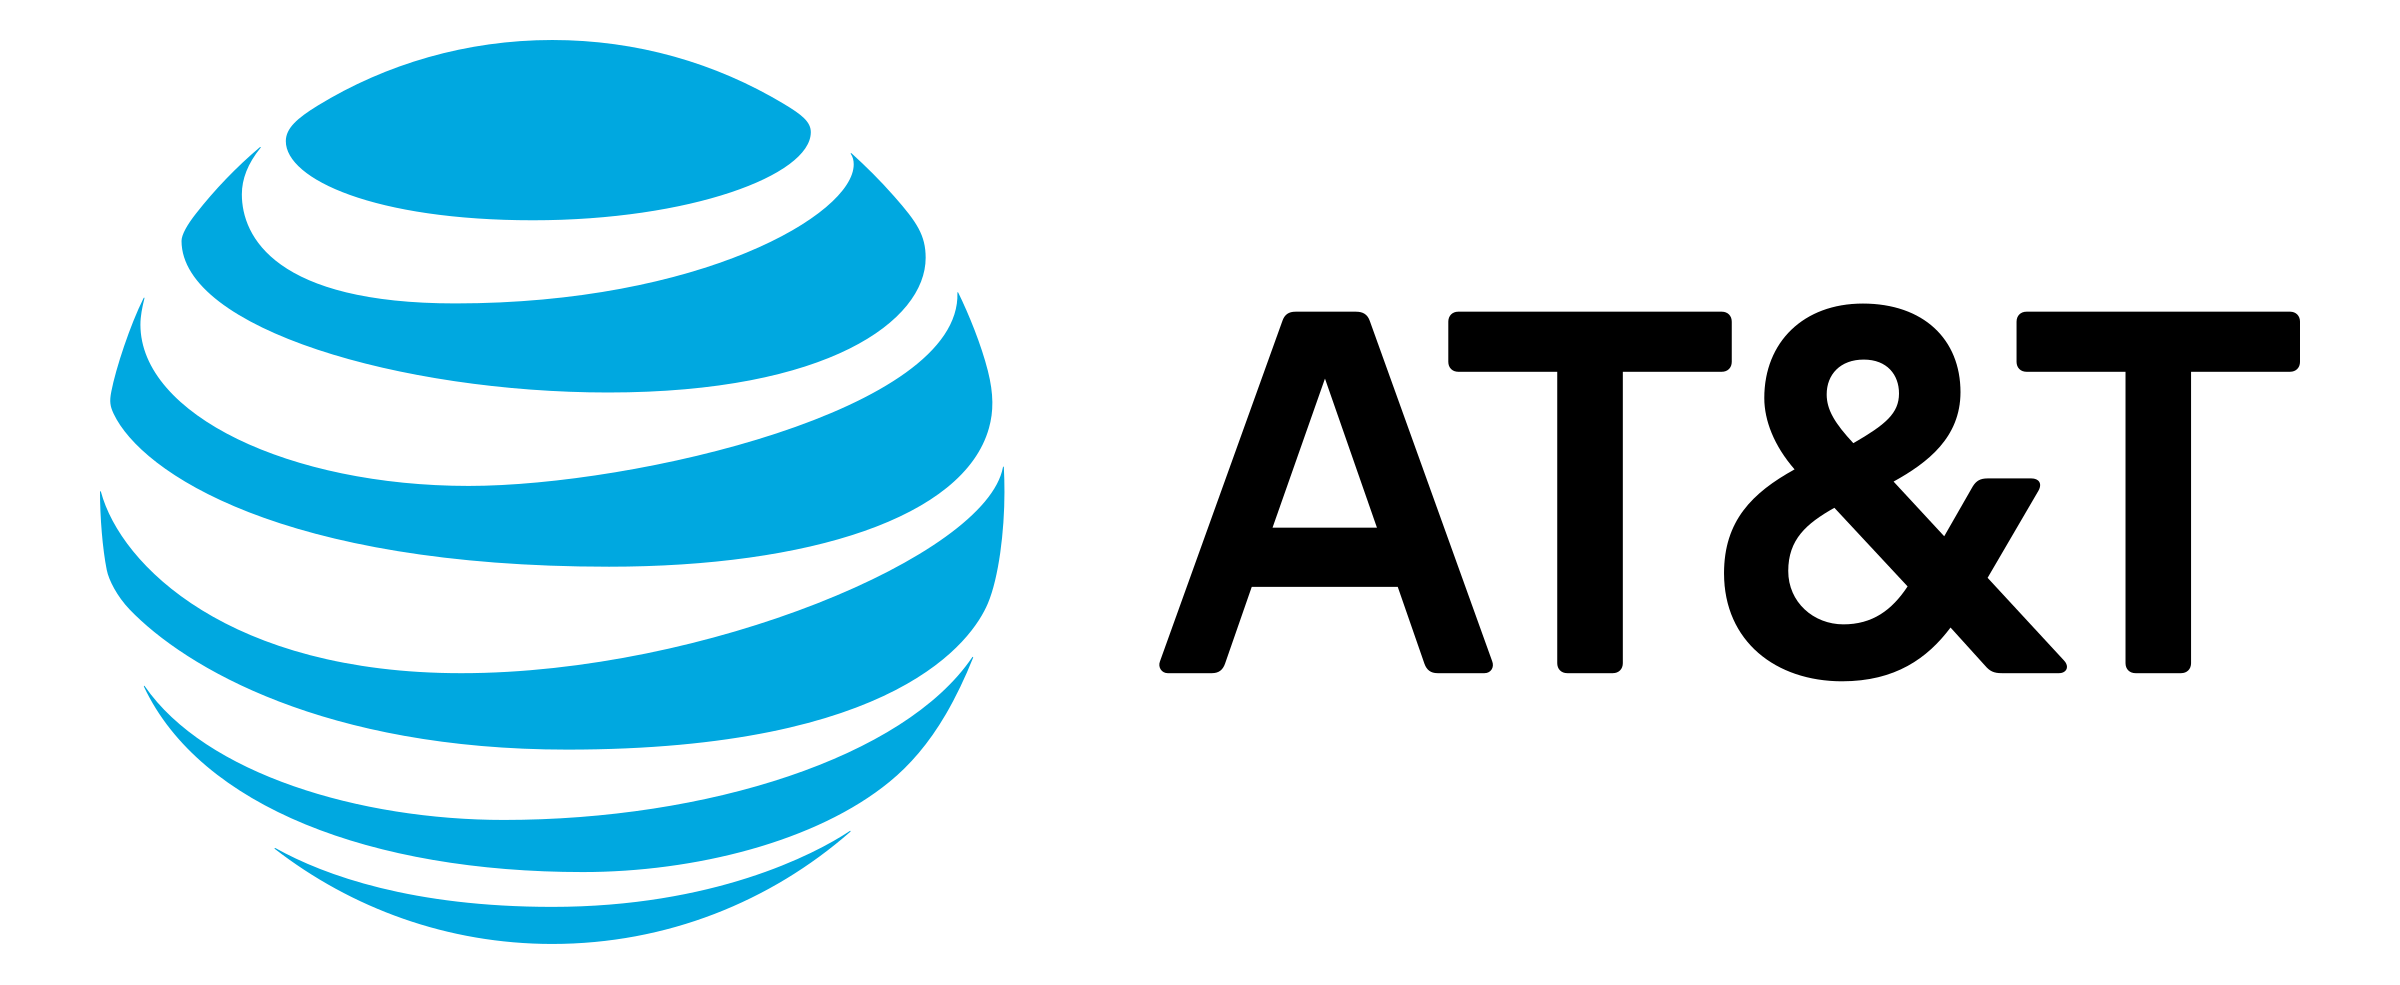 At&t logo transparent png. At t svg vector